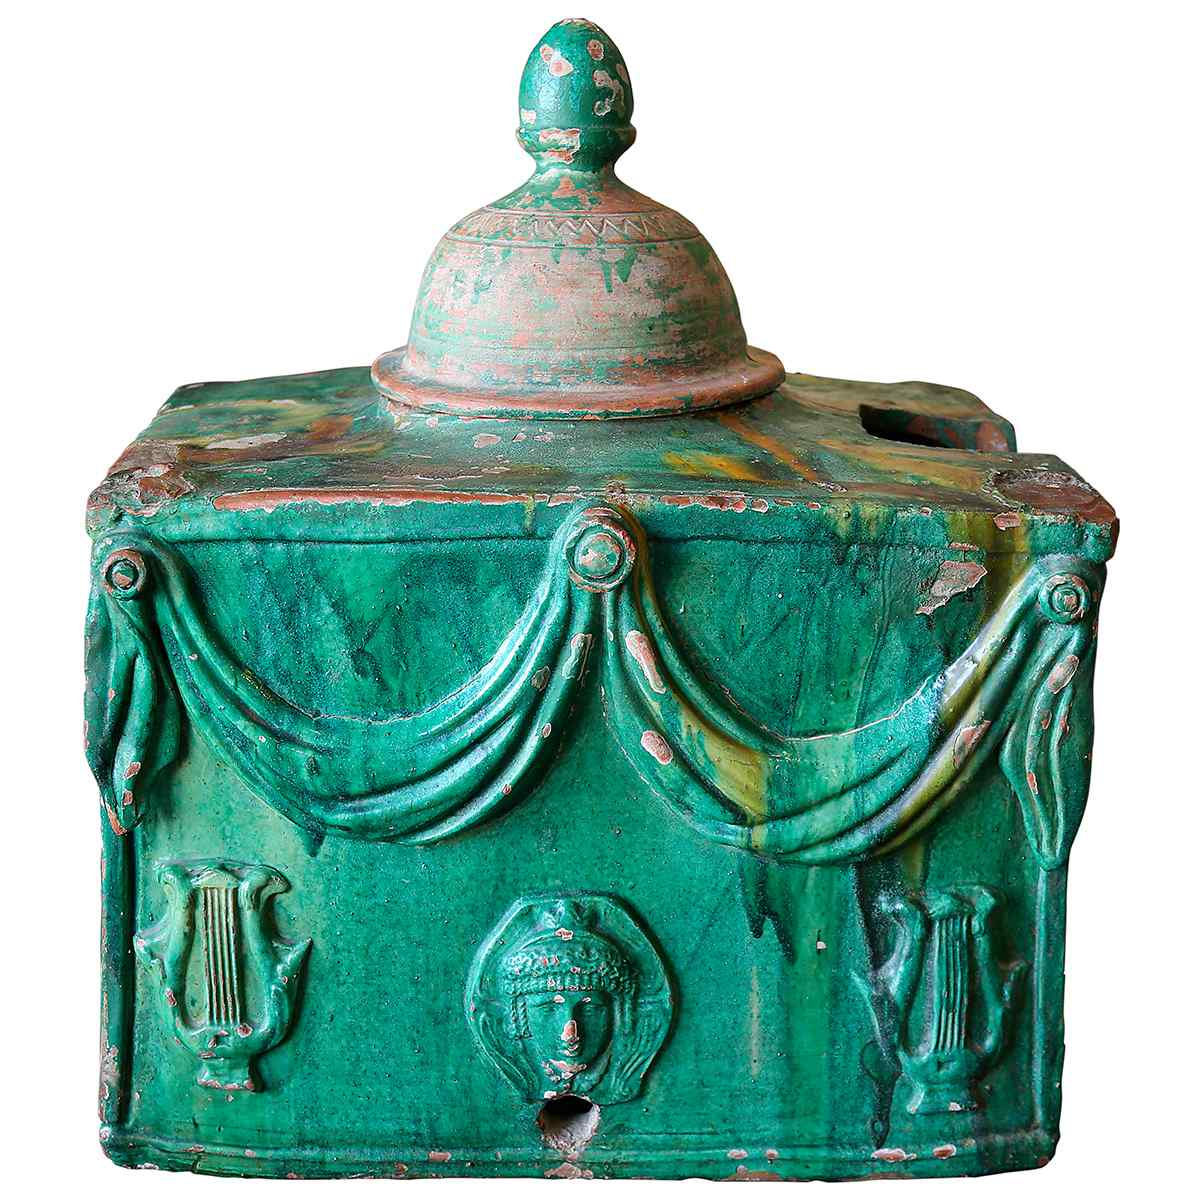 An Earthenware Fountain 18th century